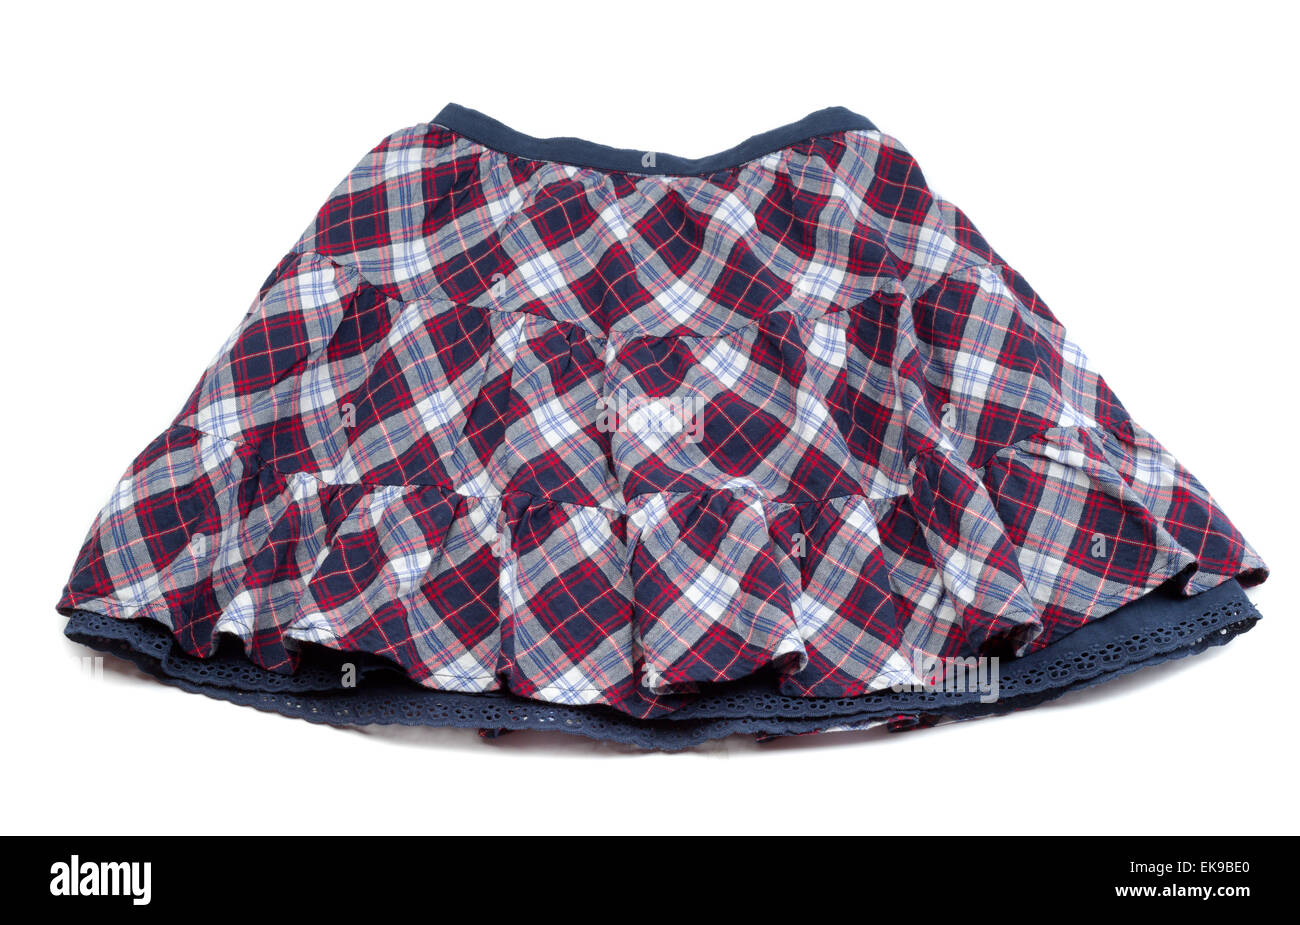 bf4c9a6c8262fc Red and blue plaid skirt. Isolate on white Stock Photo: 80726520 - Alamy